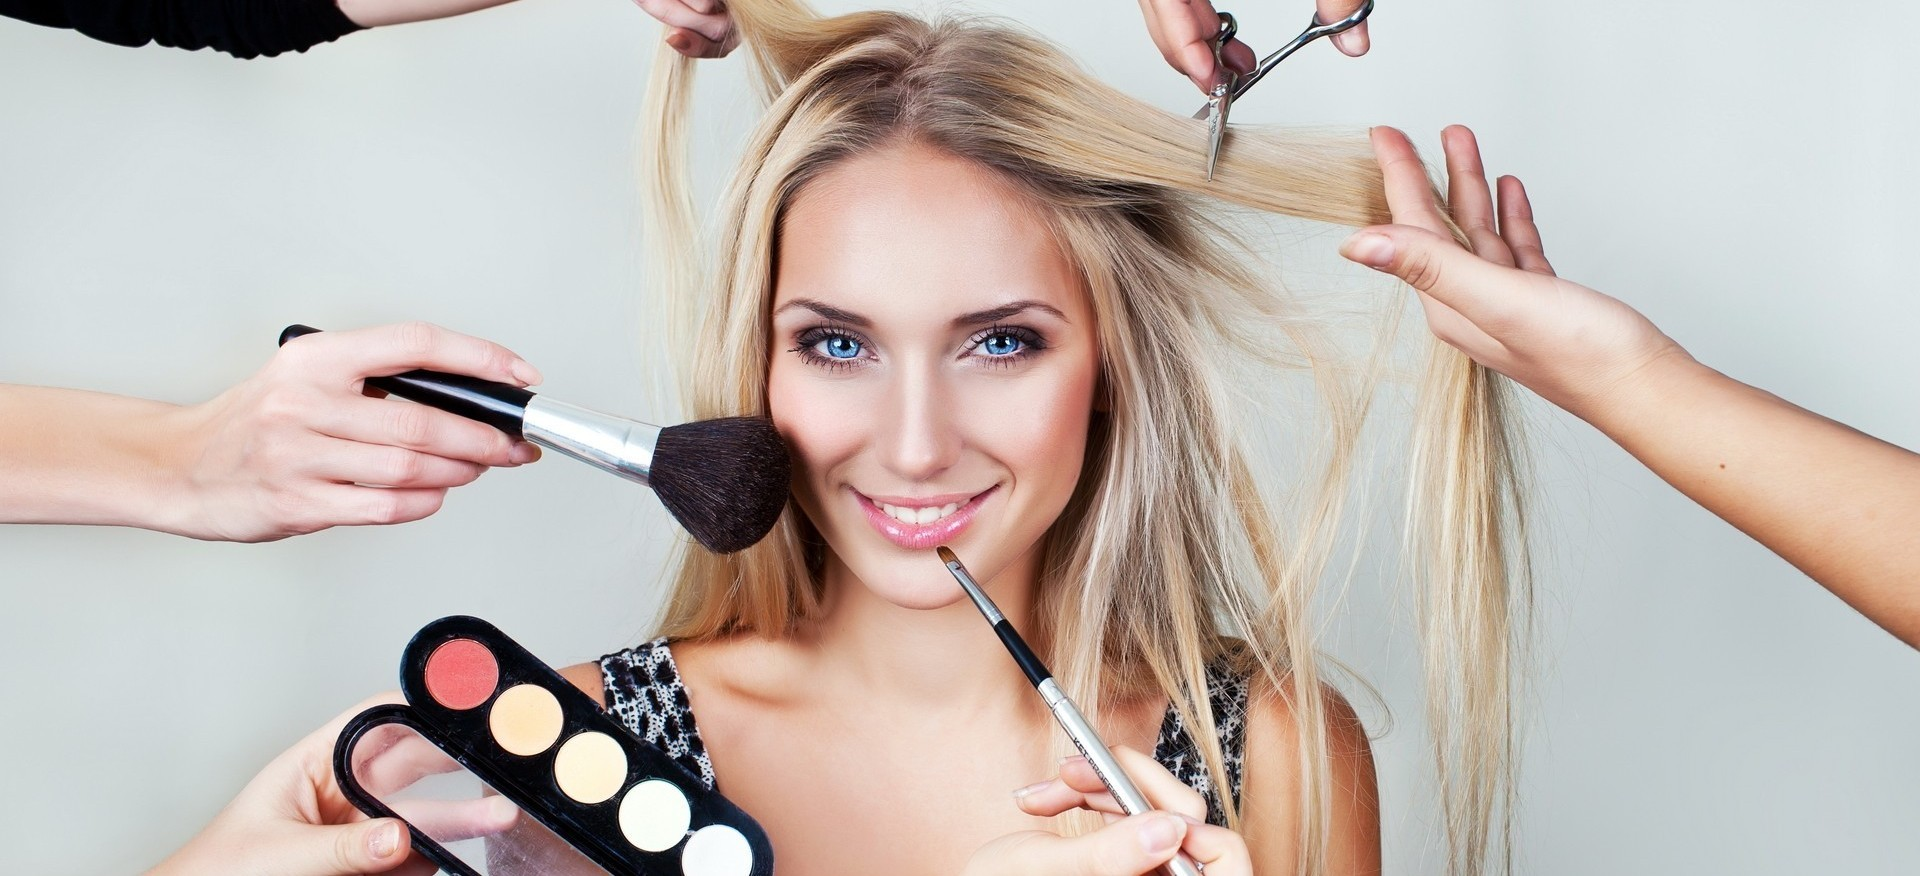 How to Recruit the Stylish & Creative Hairdresser in the Salon?